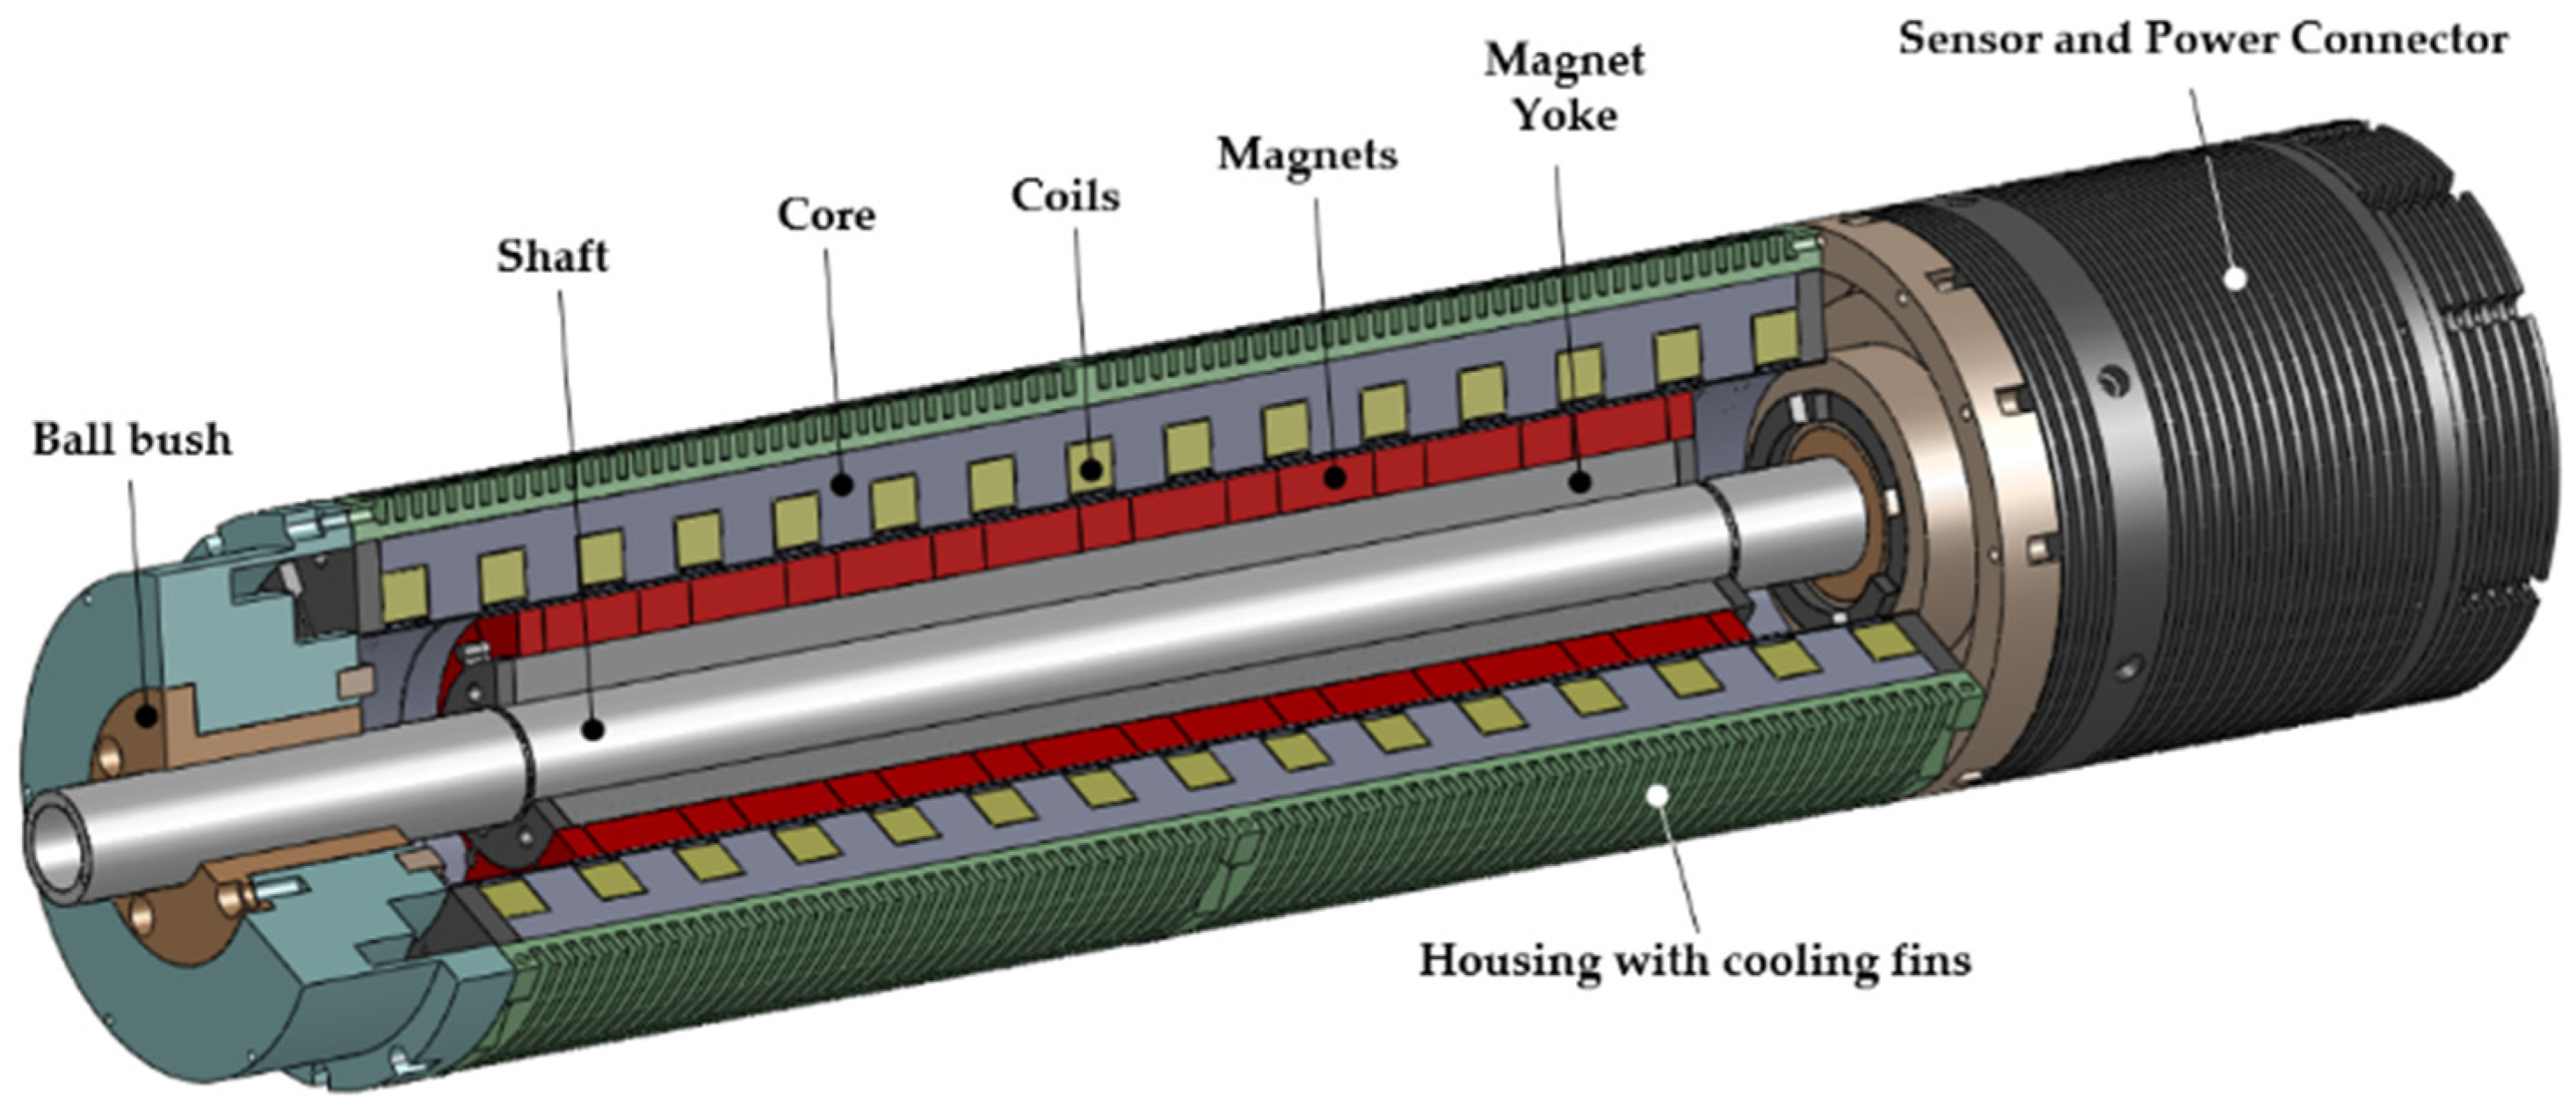 permanent magnet motor thesis University of cape town analysis of an energy efficient permanent magnet brushless universal motor by mitchell wing thesis presented for the degree of.